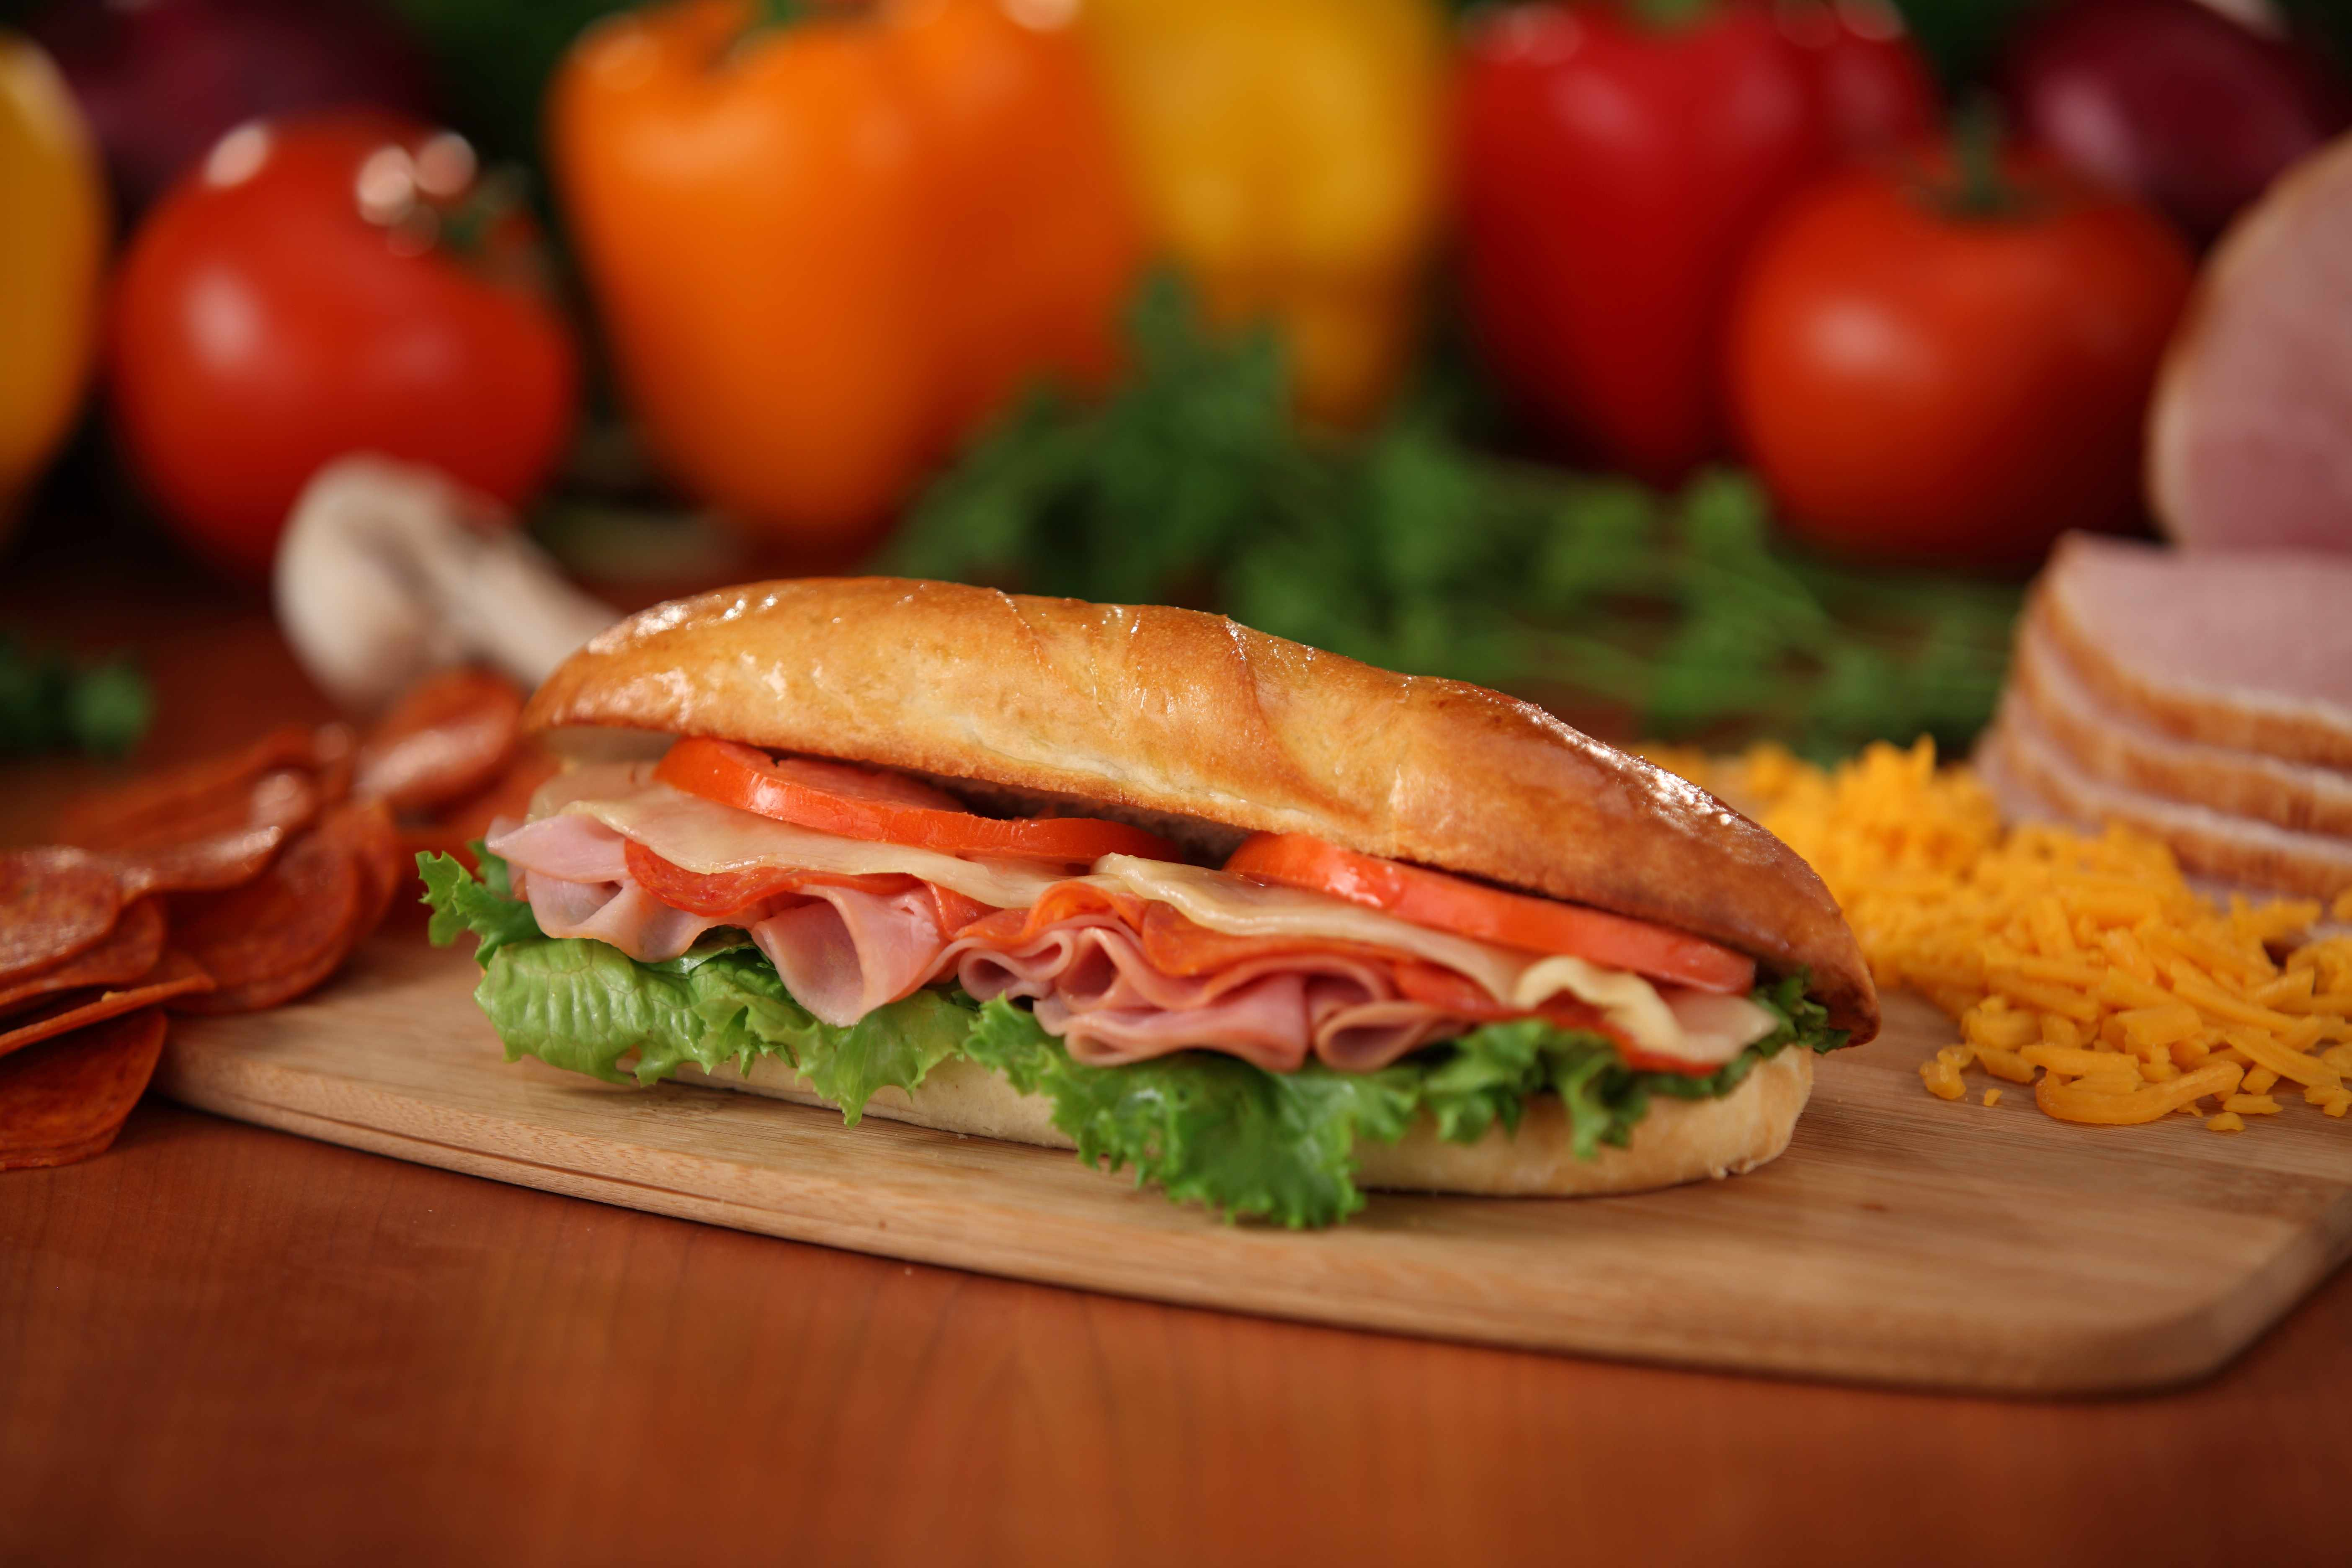 Toasted Italian Sandwich Food Fun Friday furthermore Room Service Menu further Panini 81986 as well blackbeardeli as well Operation Awesome School Lunch. on sliced turkey and ham